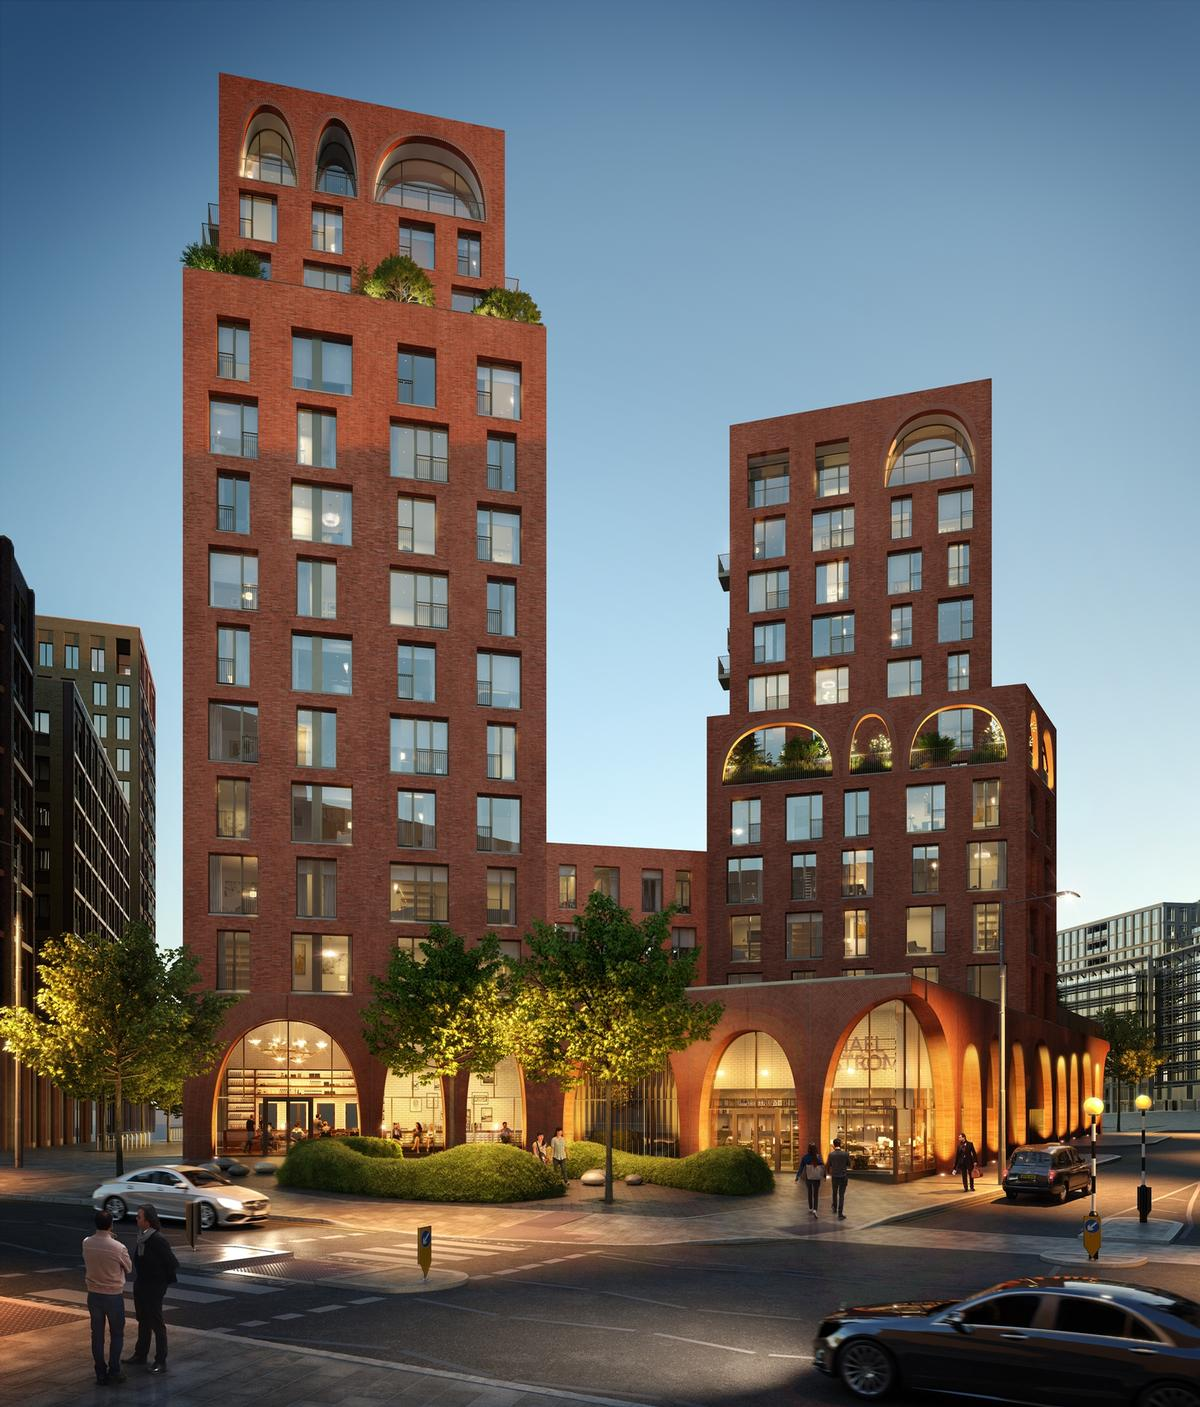 The building will feature a terracotta façade and 'Bézier curve' arches / Alison Brooks Architects